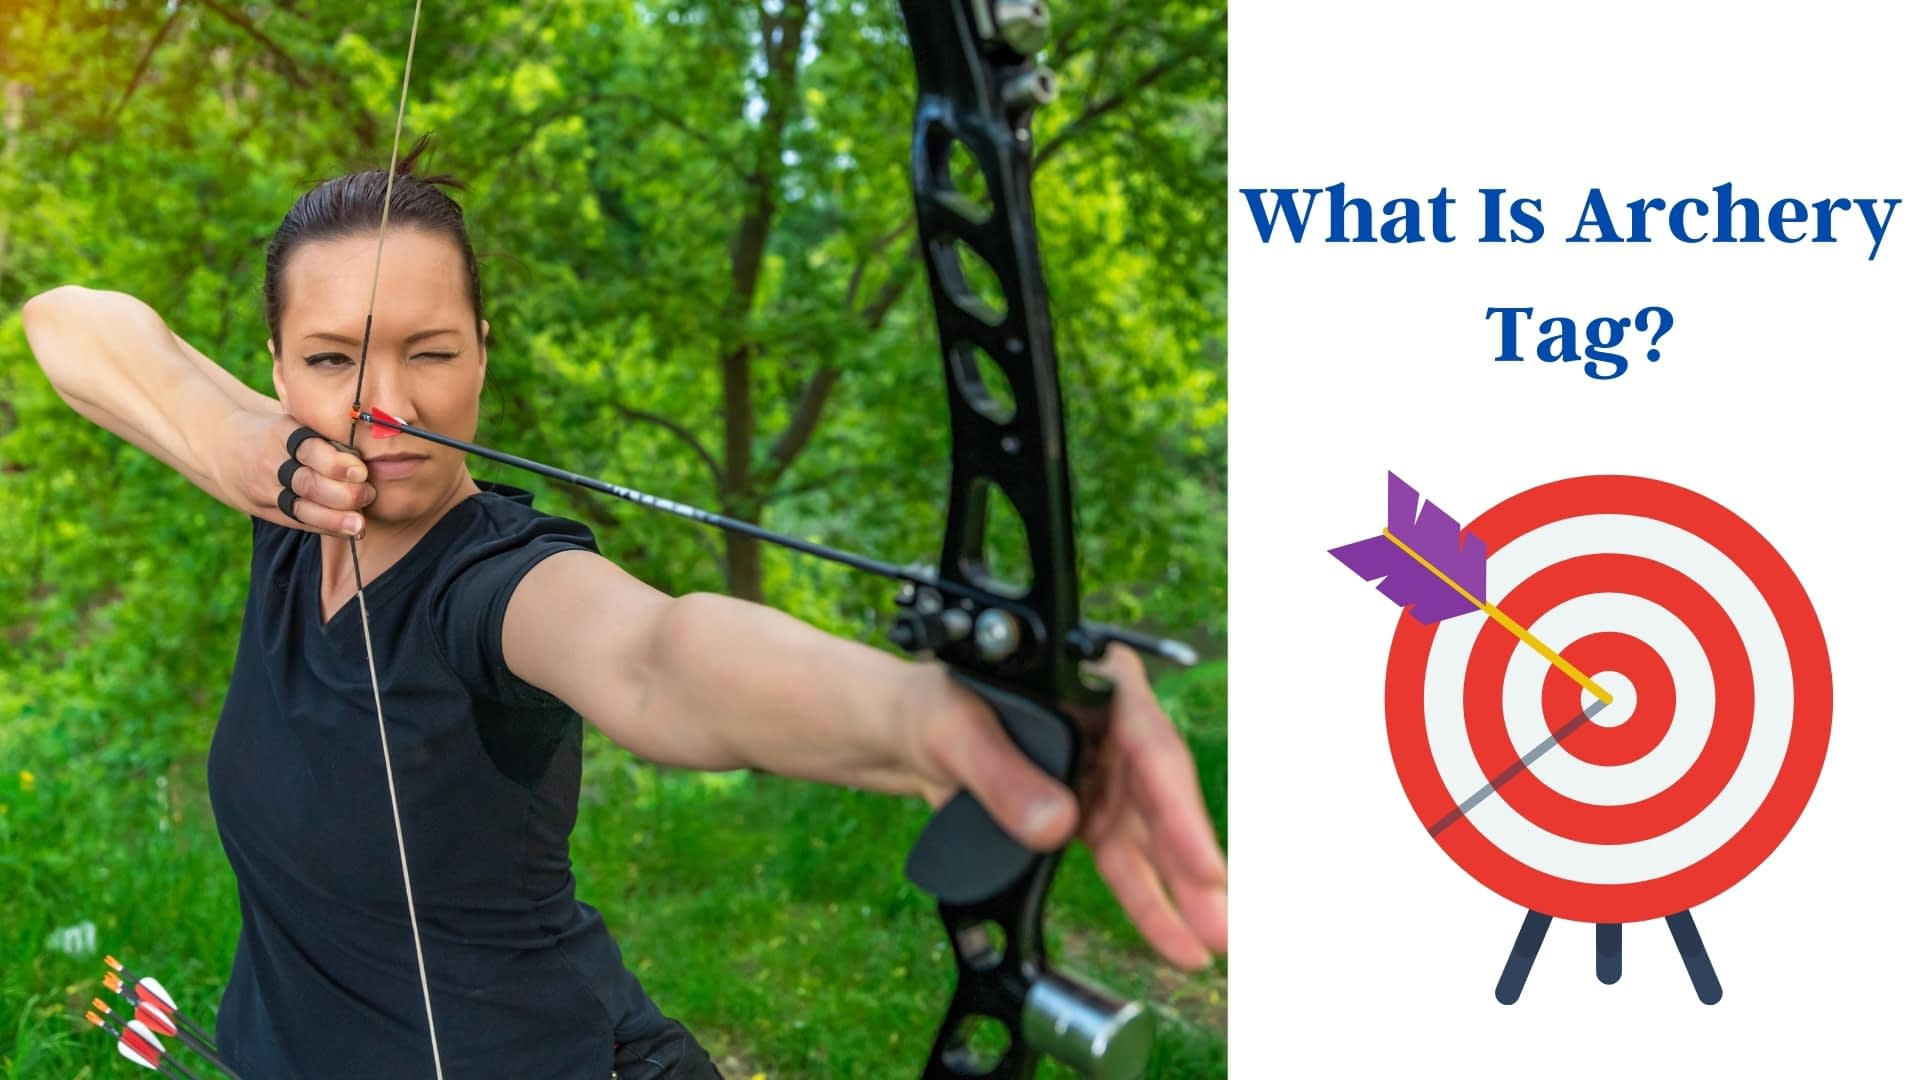 What is Archery Tag?